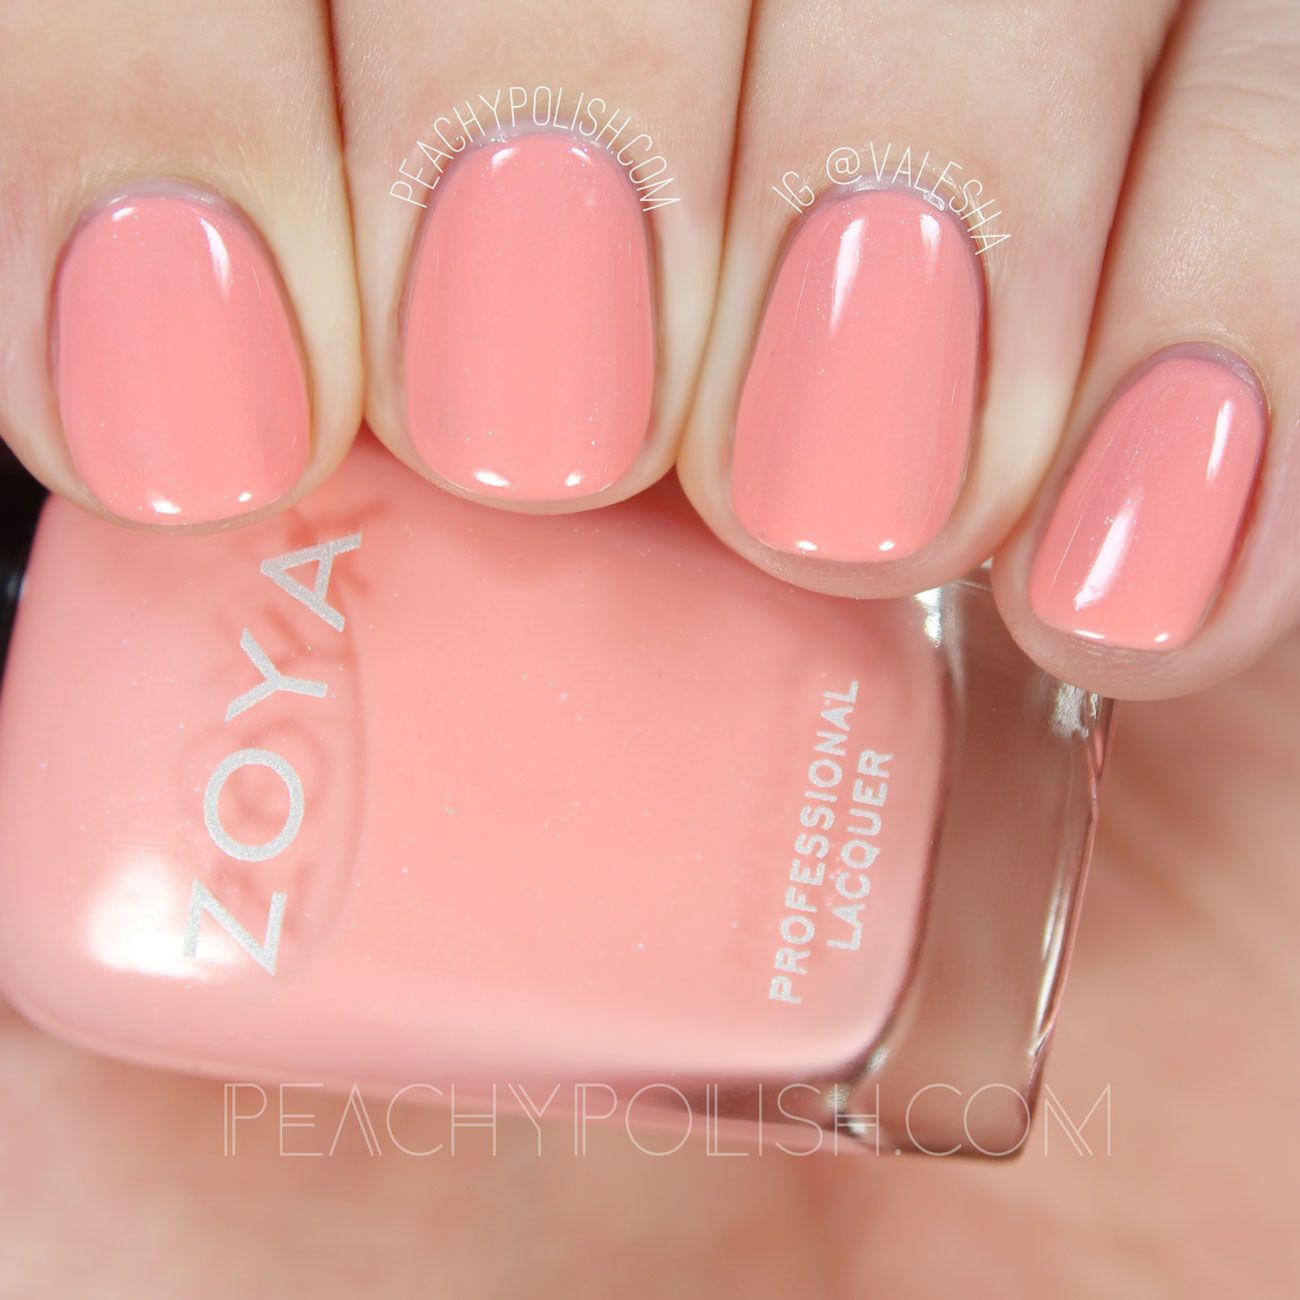 Hola Today I Have Zoya S Spring Collection For 2016 To Share With You Let S Get Right To It Laurel Is A Light Coral Pink Nails Nails Now Coral Nail Polish